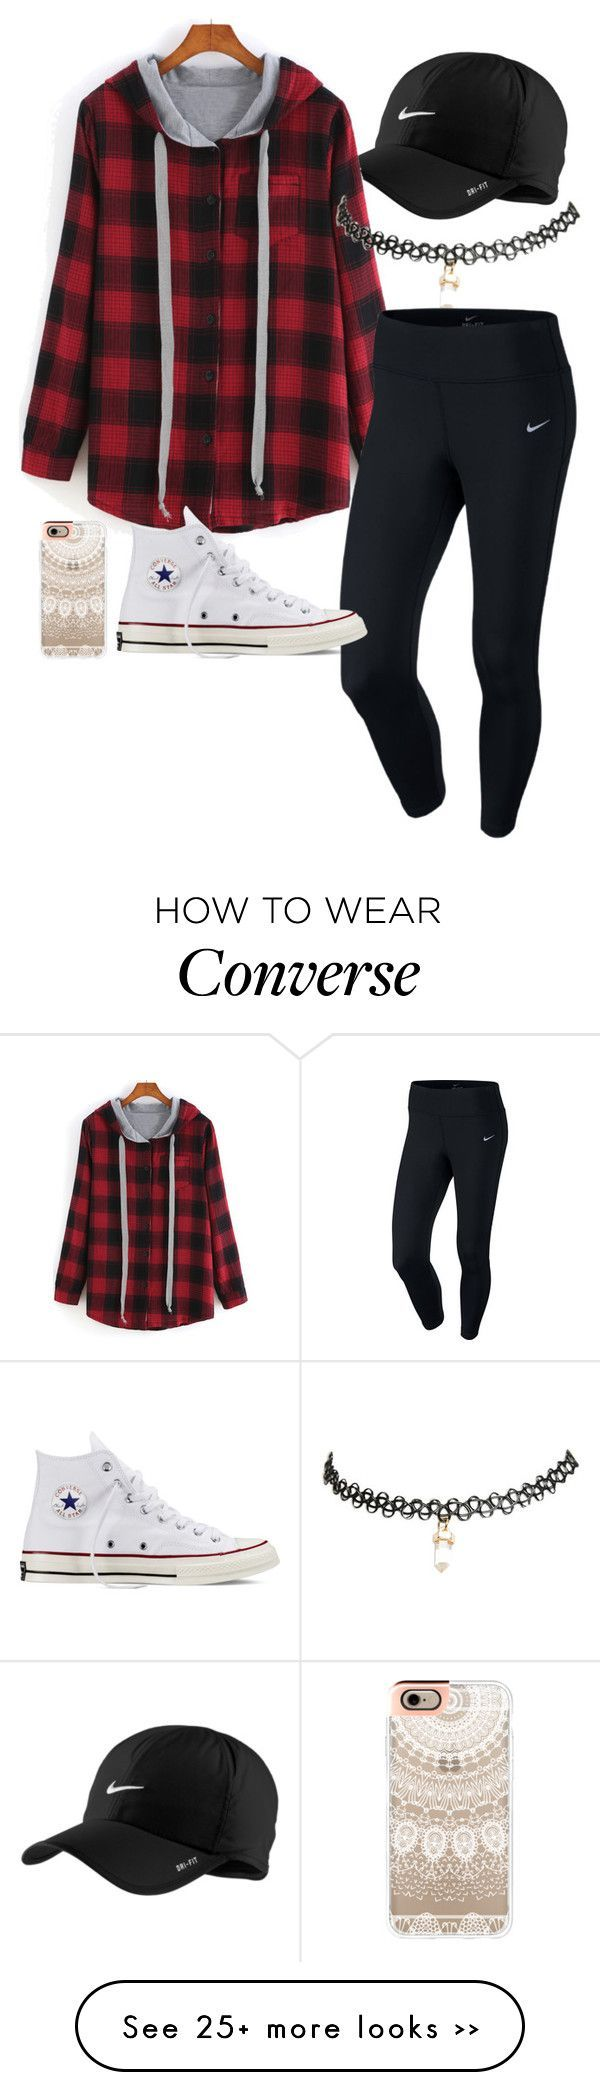 """""""Untitled #1"""" by taylorfrankhauser12 on Polyvore featuring NIKE, Wet Seal, Converse and Casetify"""